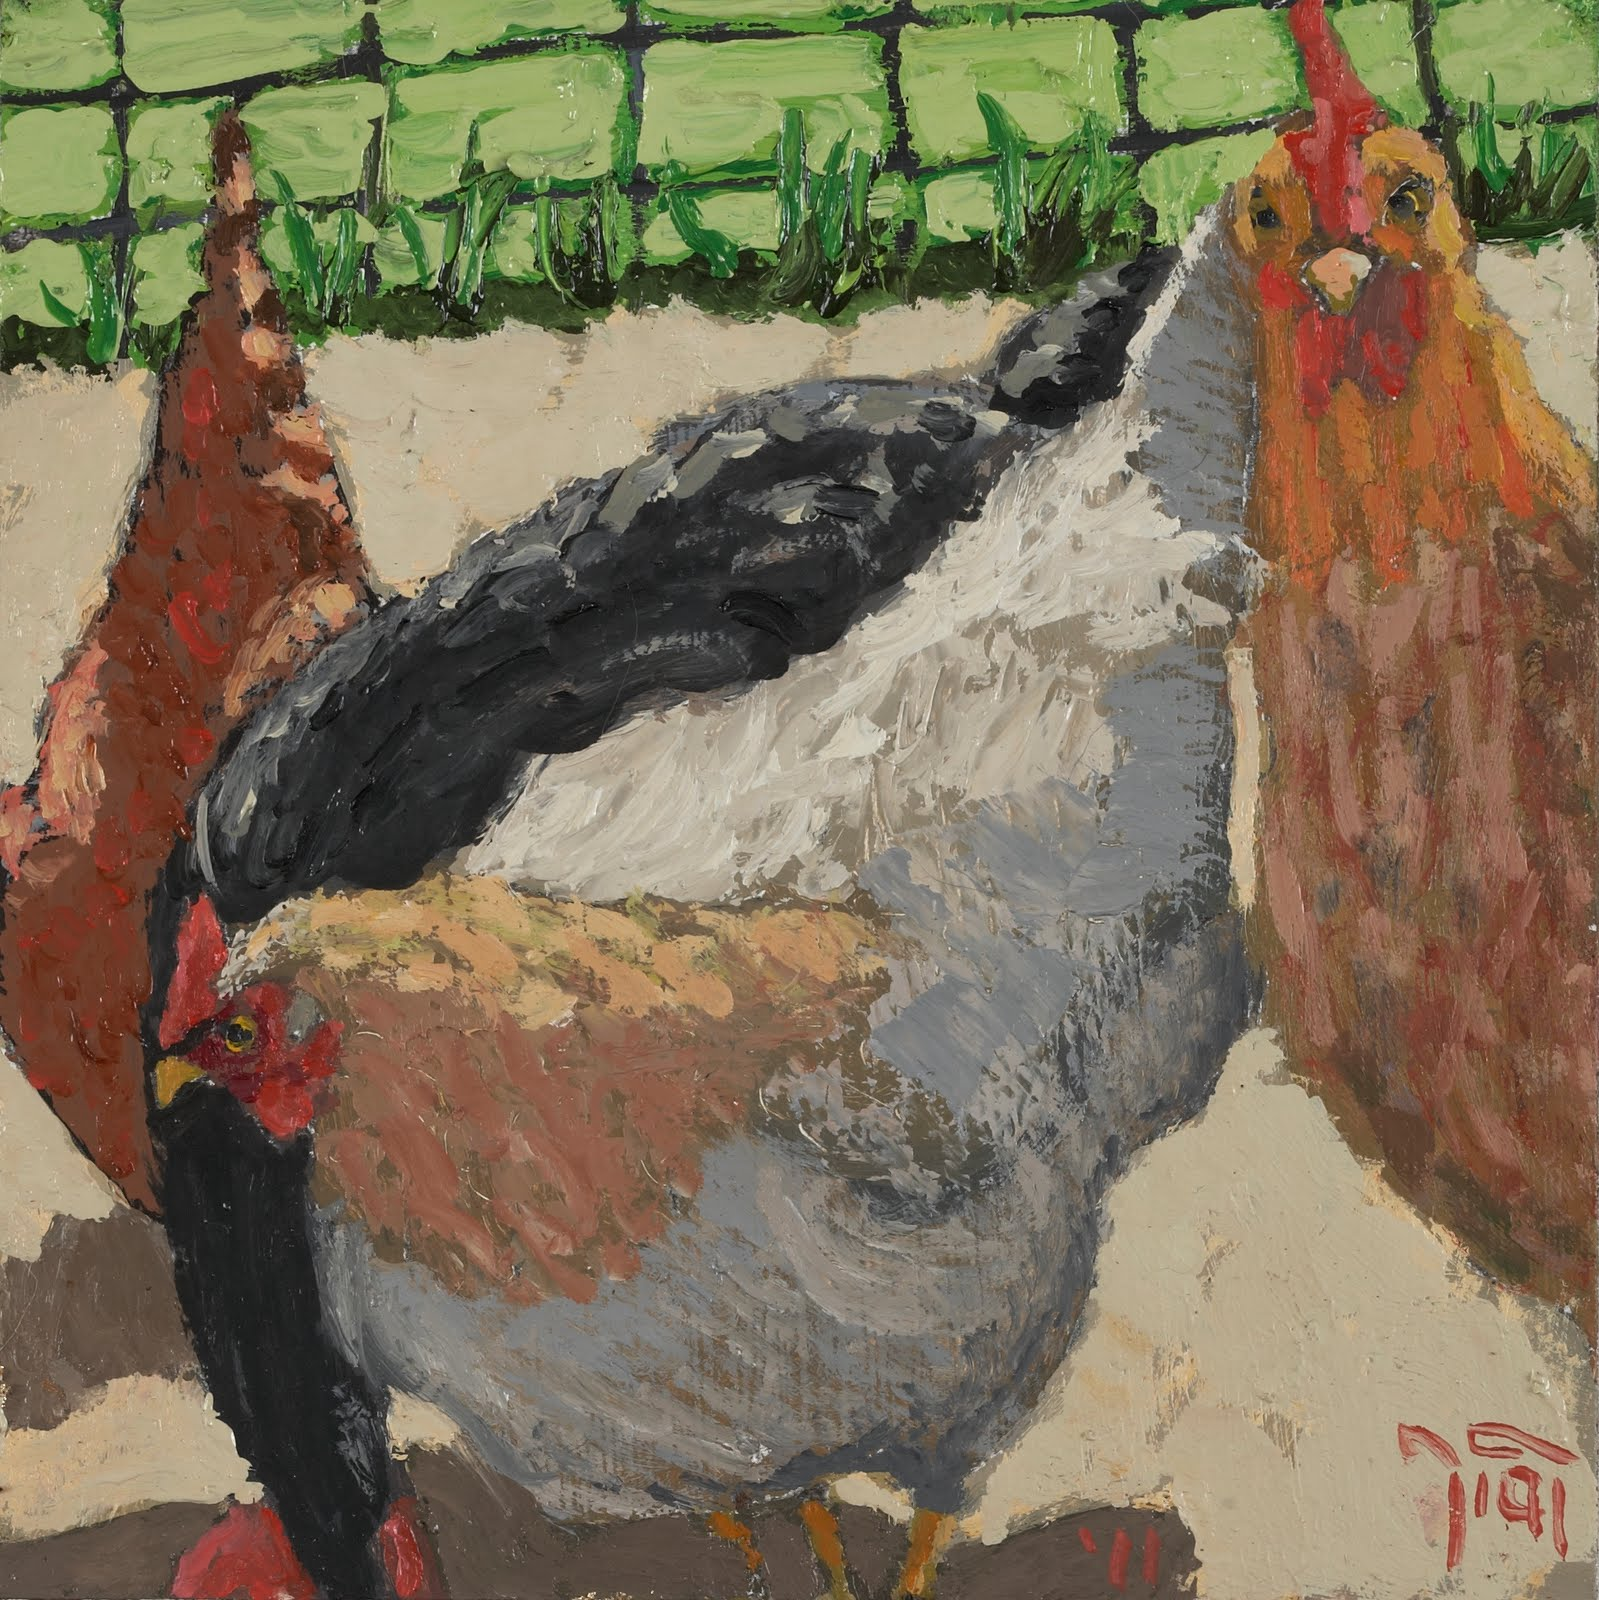 hay house online new chicken paintings